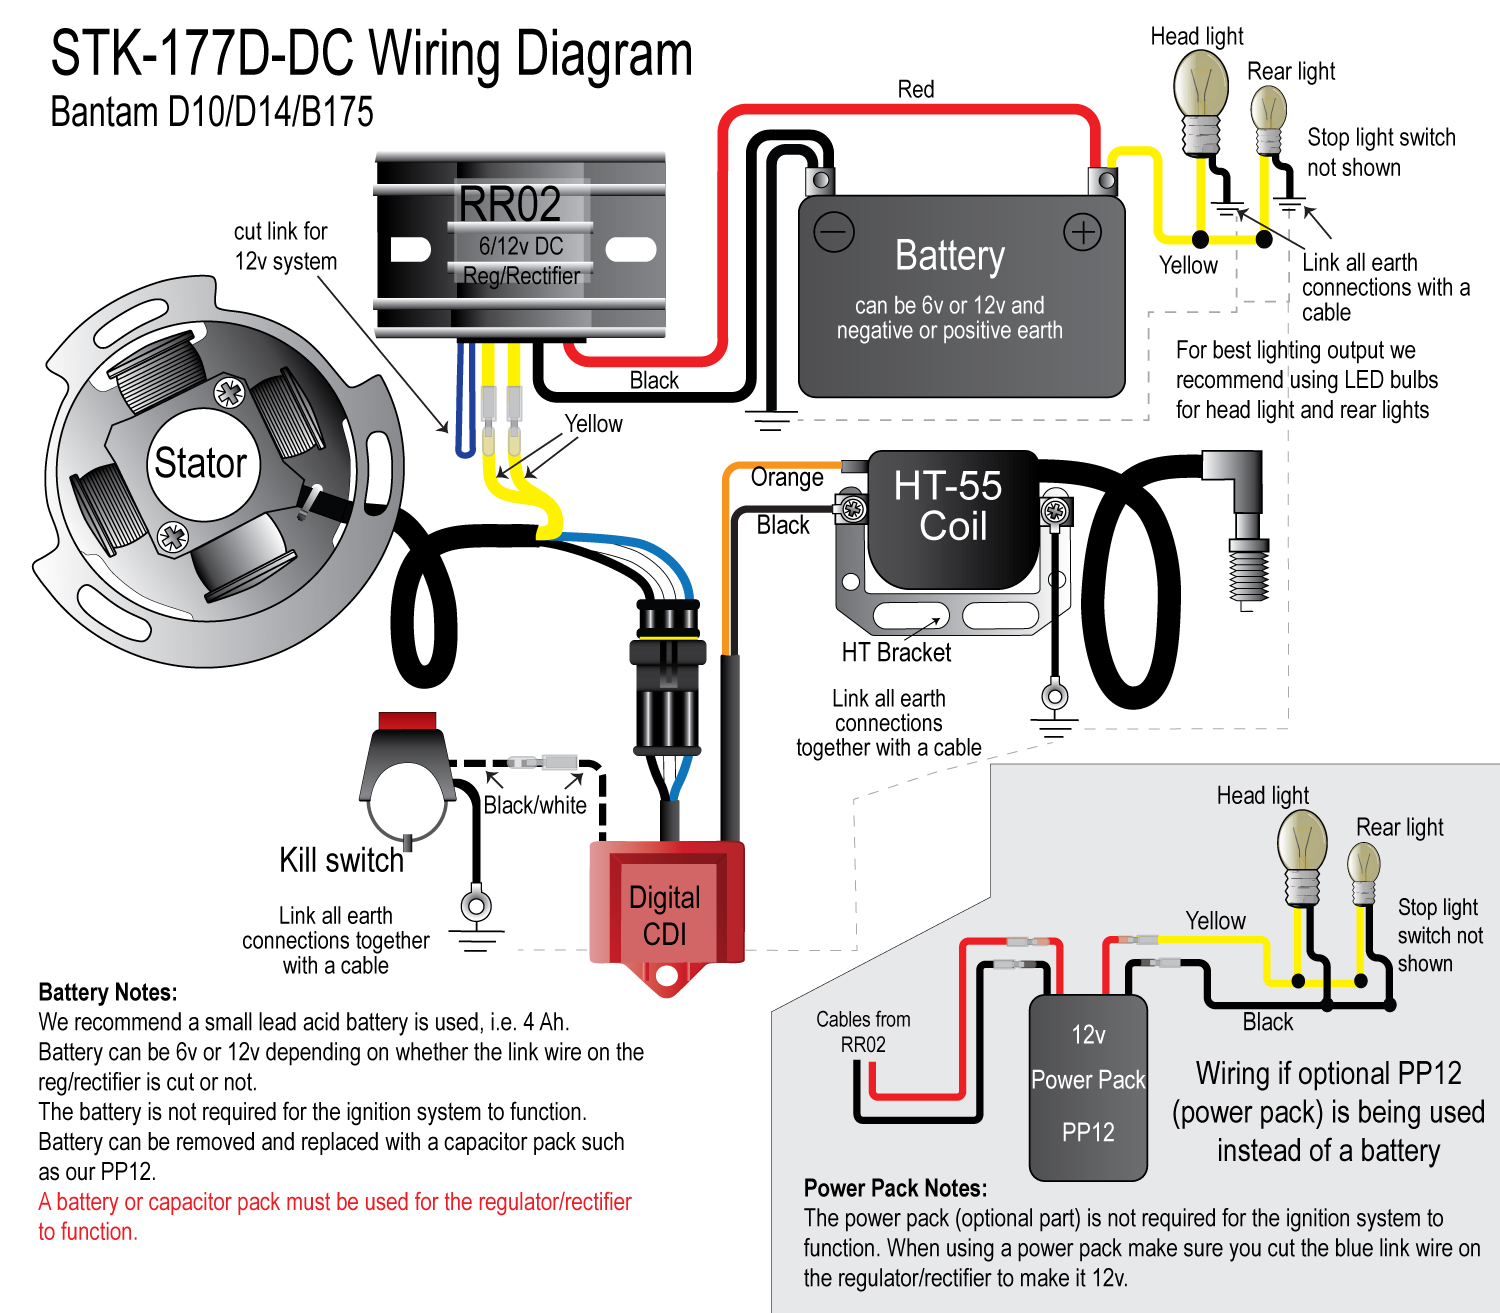 STK 177 wiring diagram cdi ignition lighting external rotor kit for bsa bantam d10, d14 bsa bantam d7 wiring diagram at fashall.co